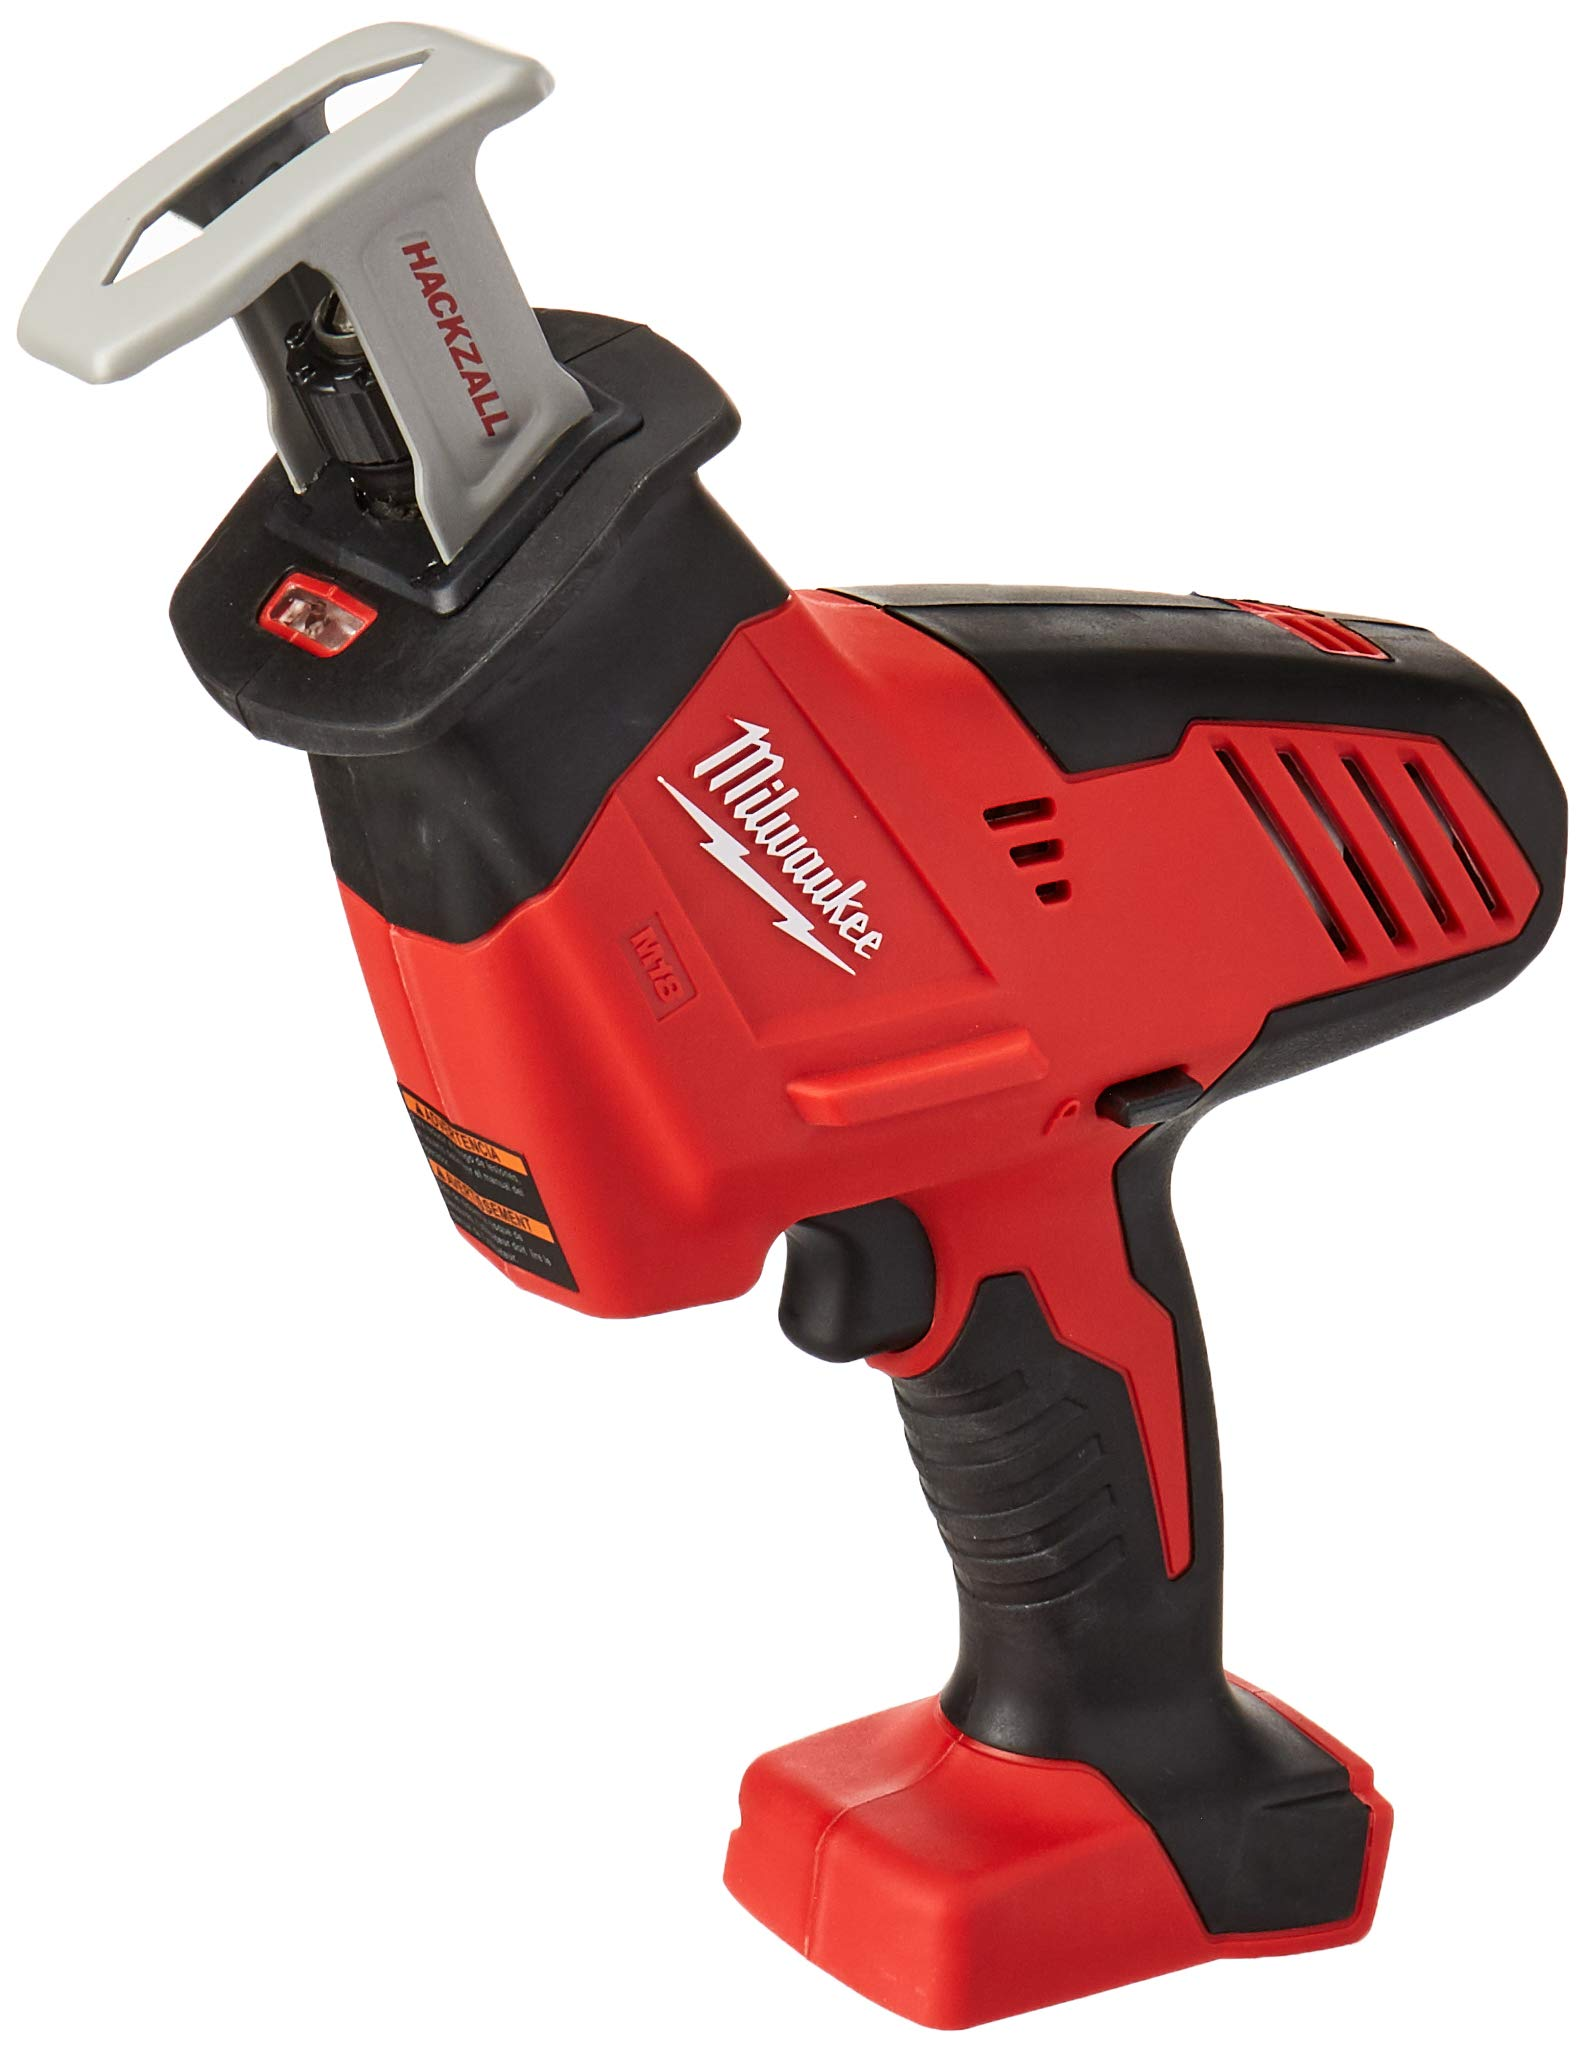 Milwaukee 2625-20 M18 18-Volt Lithium-Ion Cordless Hackzall Reciprocating Saw, Bare Tool by Milwaukee